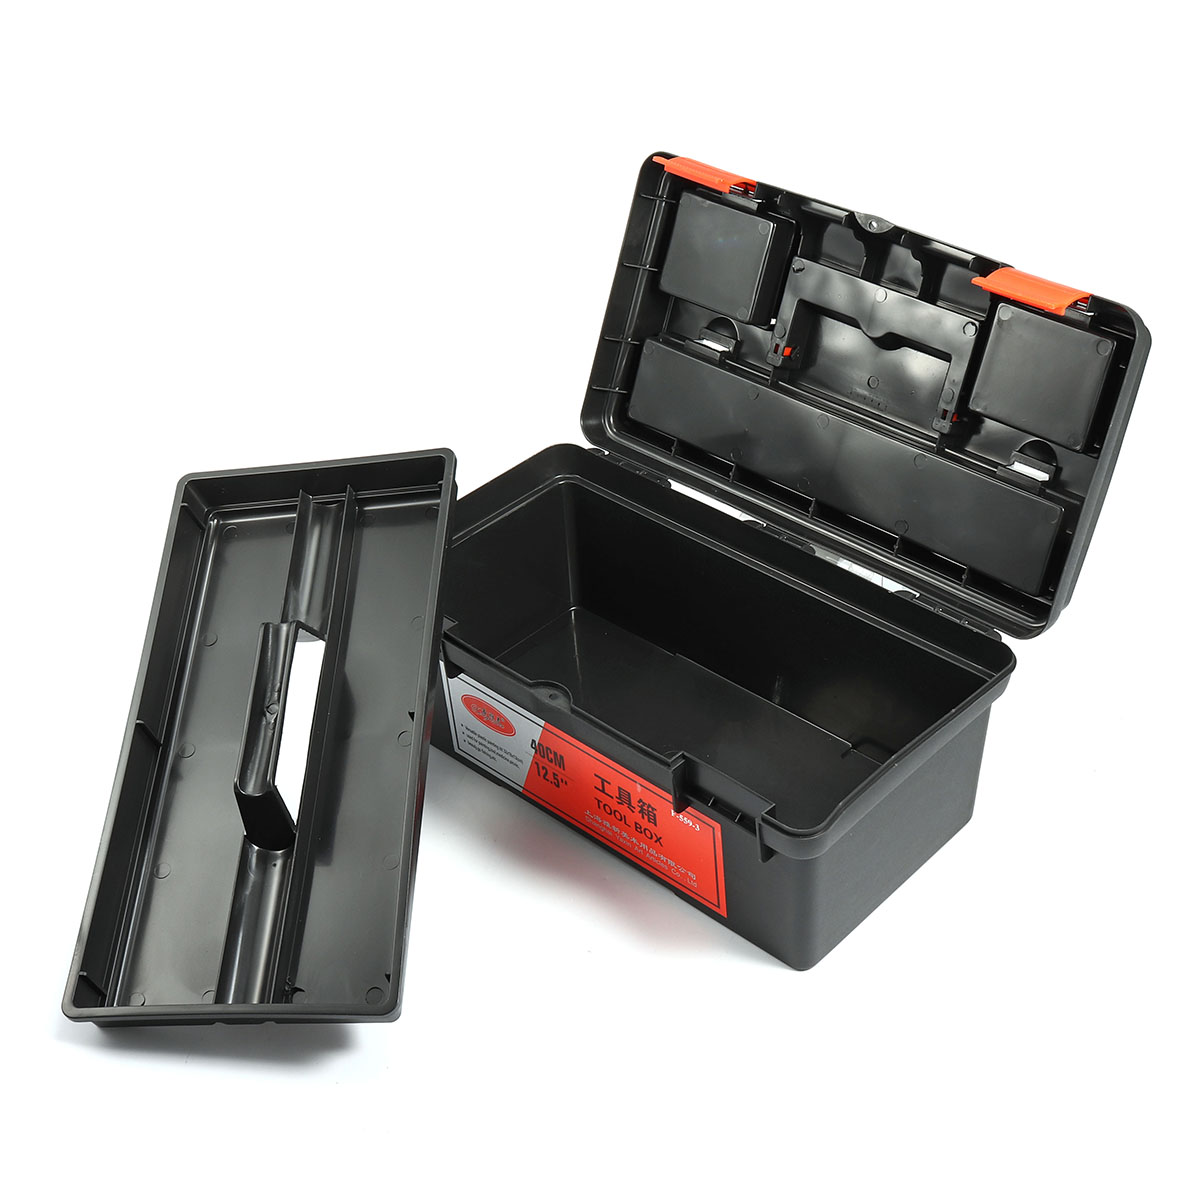 16 Inch Work Tools Storage Box Organizer Handle Tray Holder Plastic Toolbox Protable Container 2 Layers Tools Case Detachable